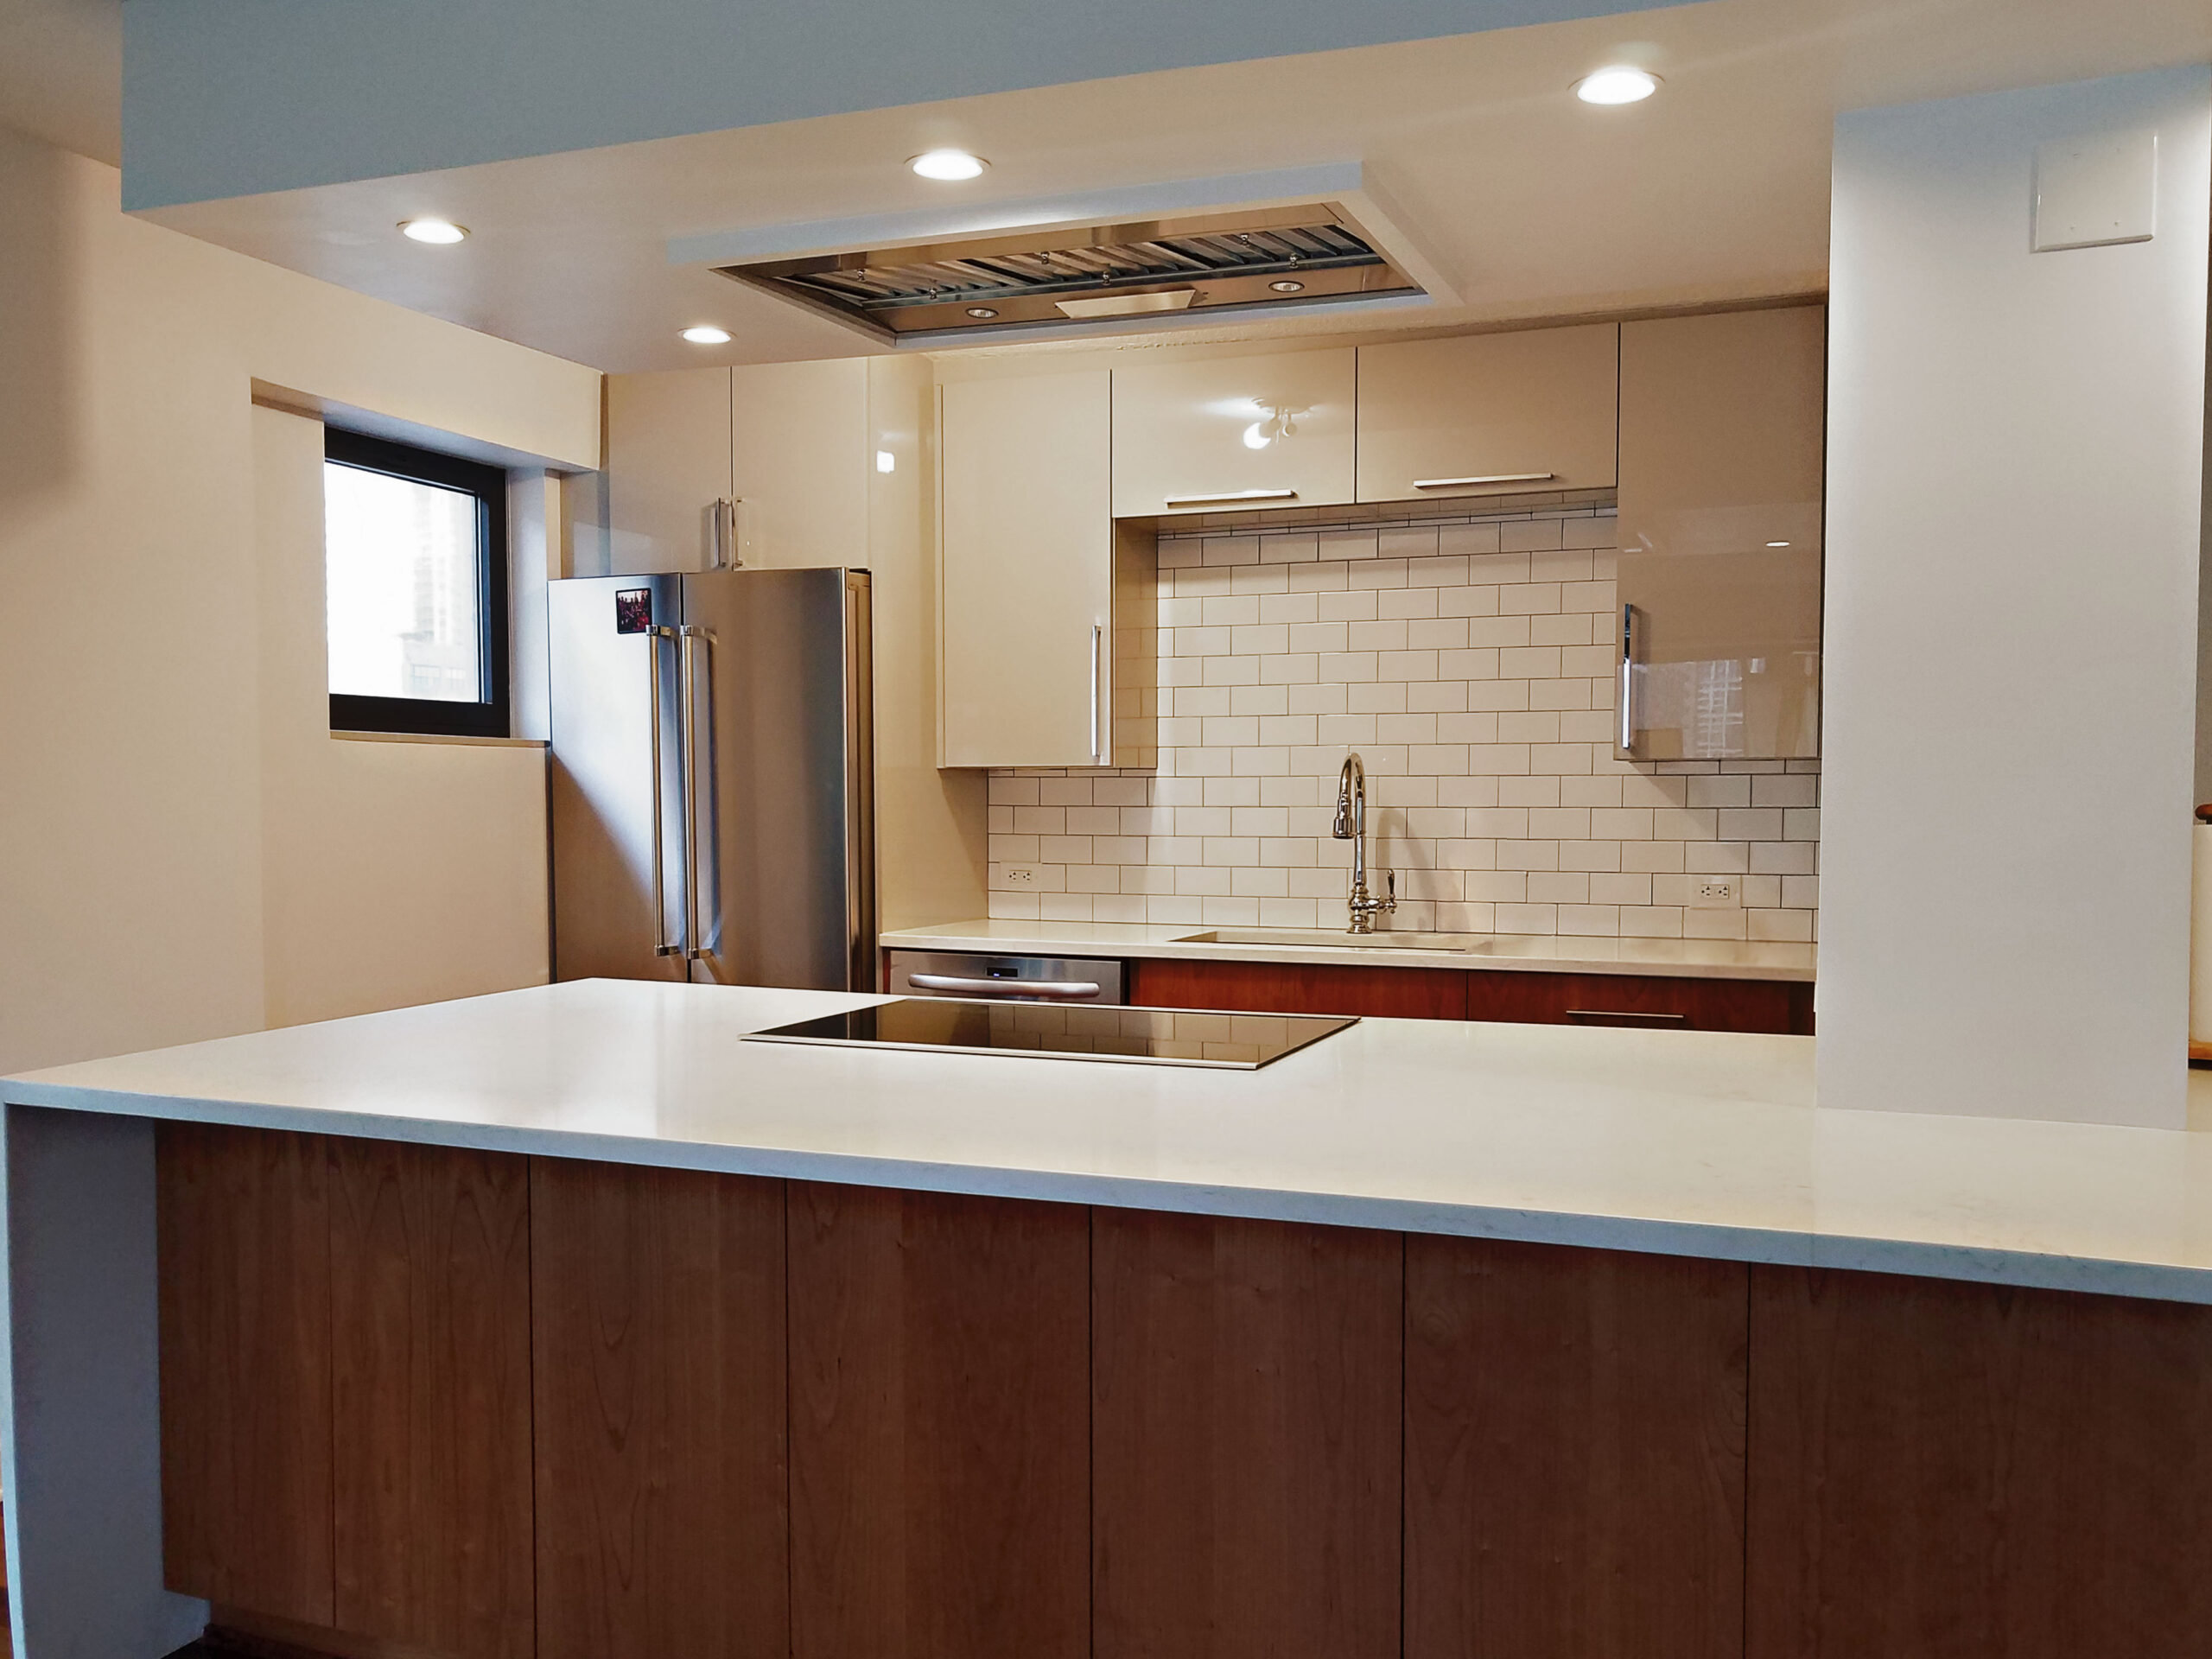 9 Kitchen Counter Replacement Options